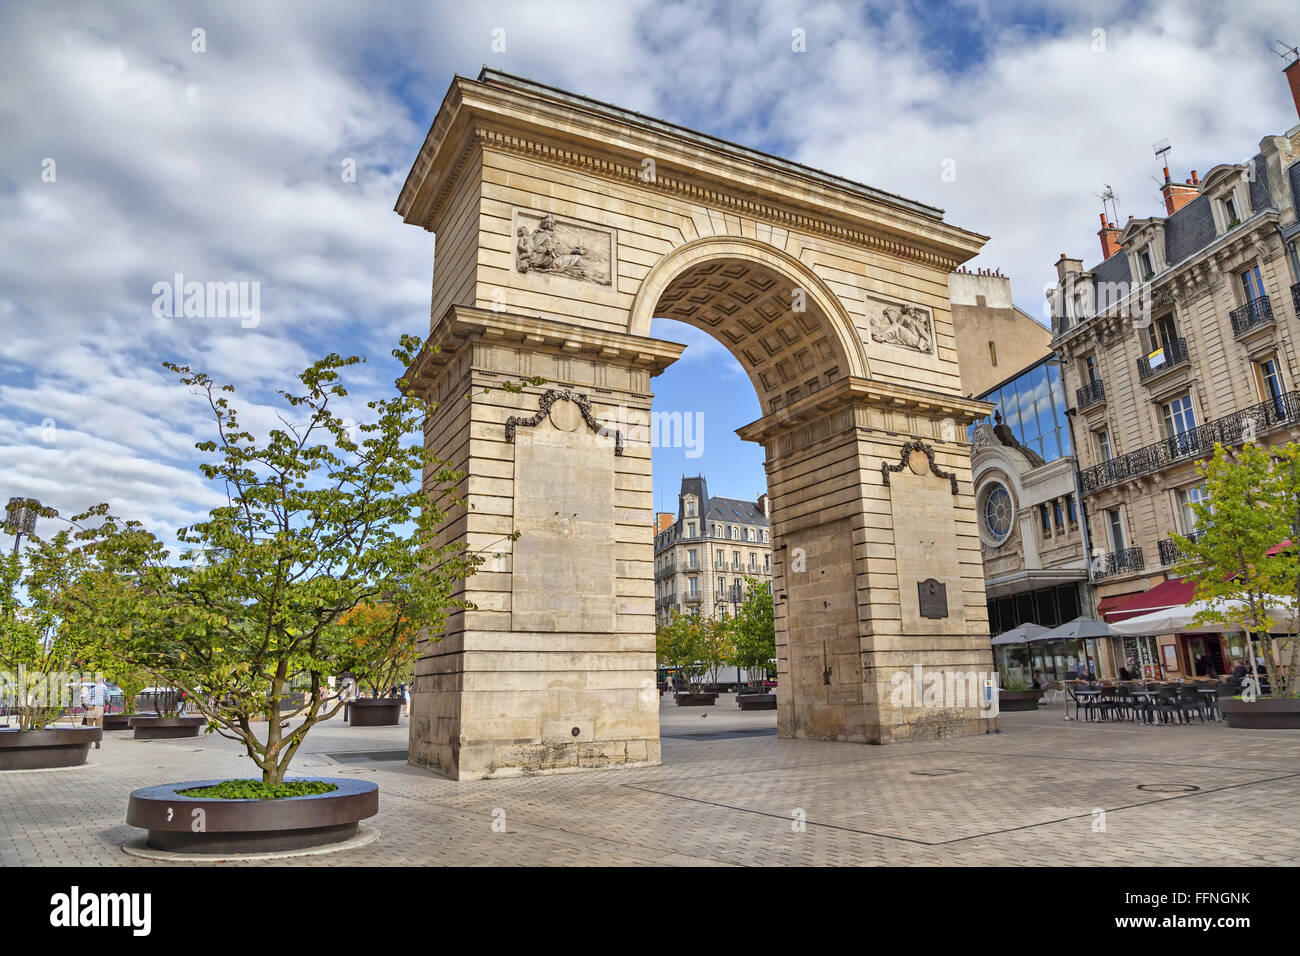 Guillaume gate on Darcy square in Dijon, Burgundy, France Stock Photo